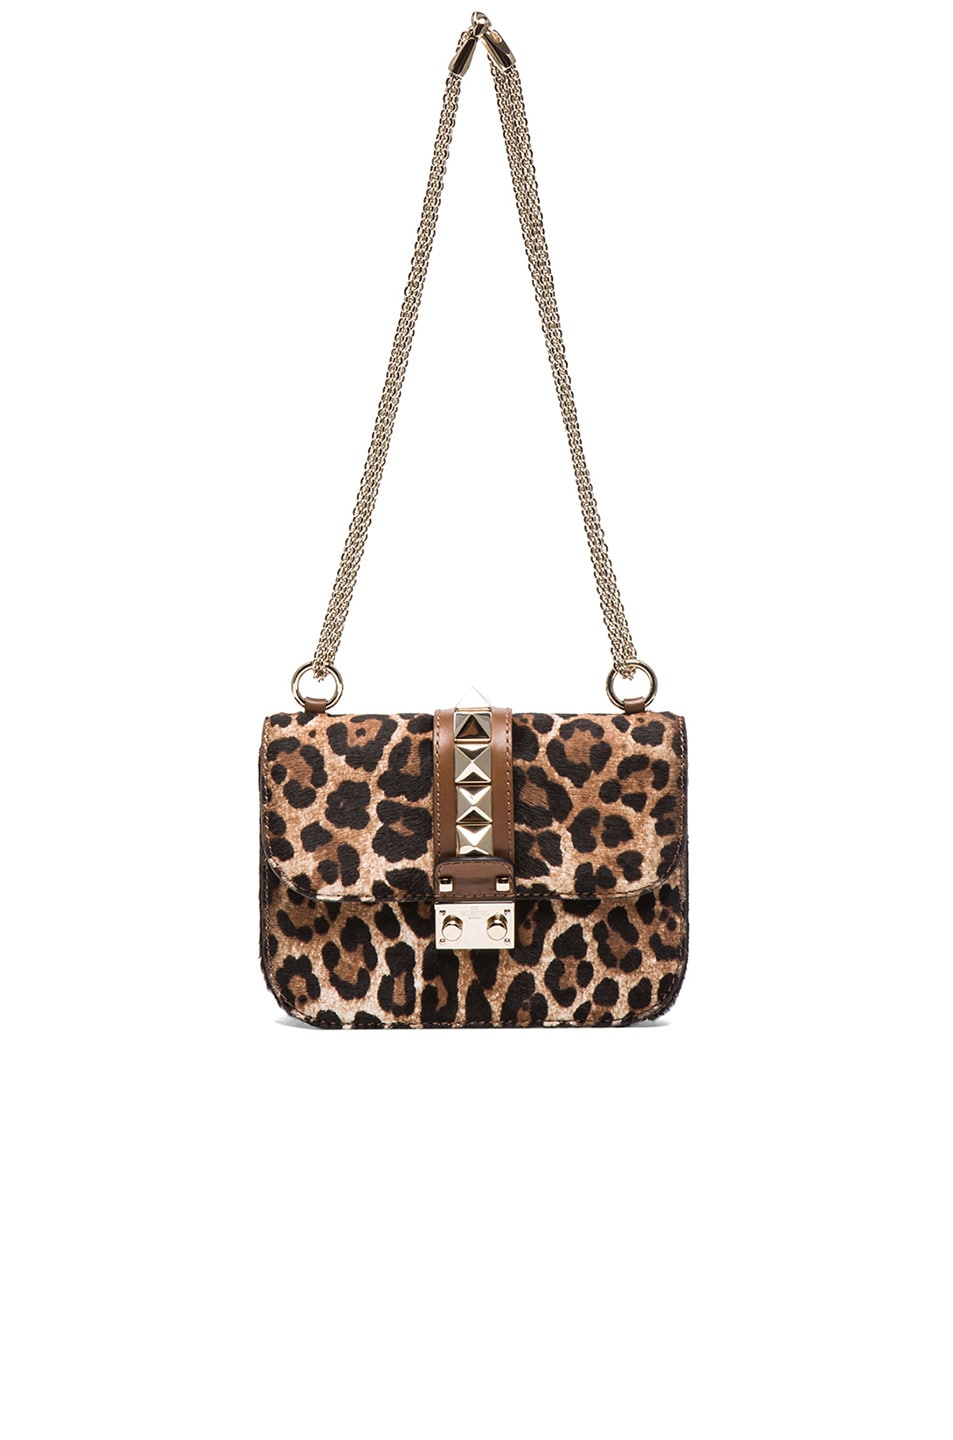 a9c0999e6506 Image 6 of Valentino Cavallino Small Lock Flap Bag in Leopard